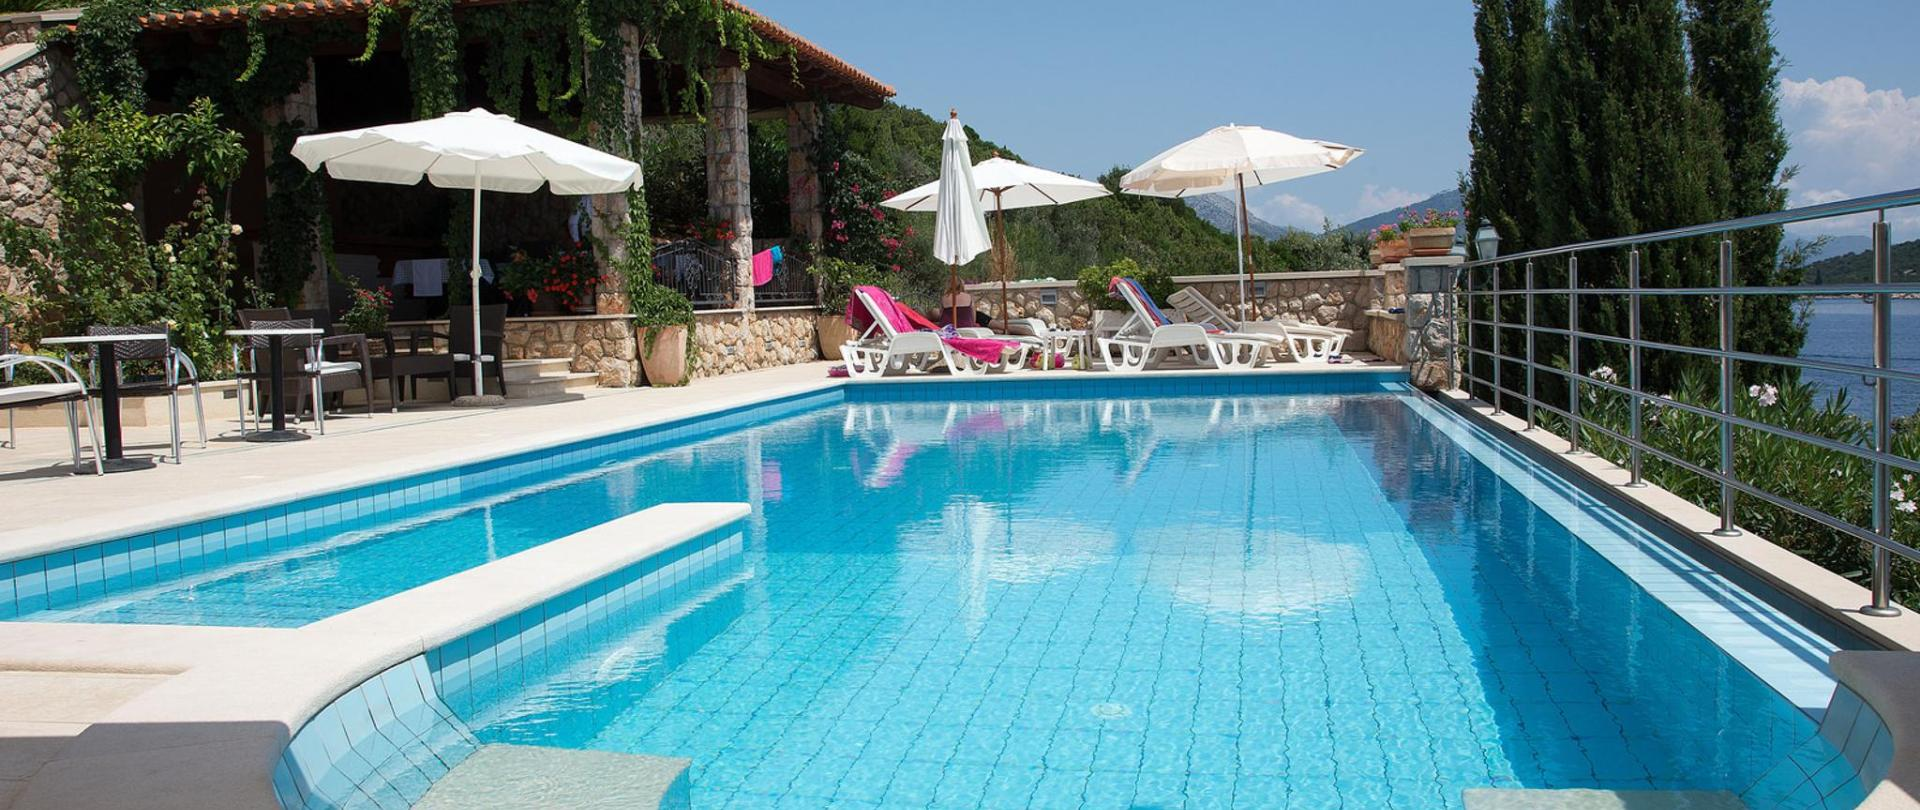 hotel-bozica-swimming-pool